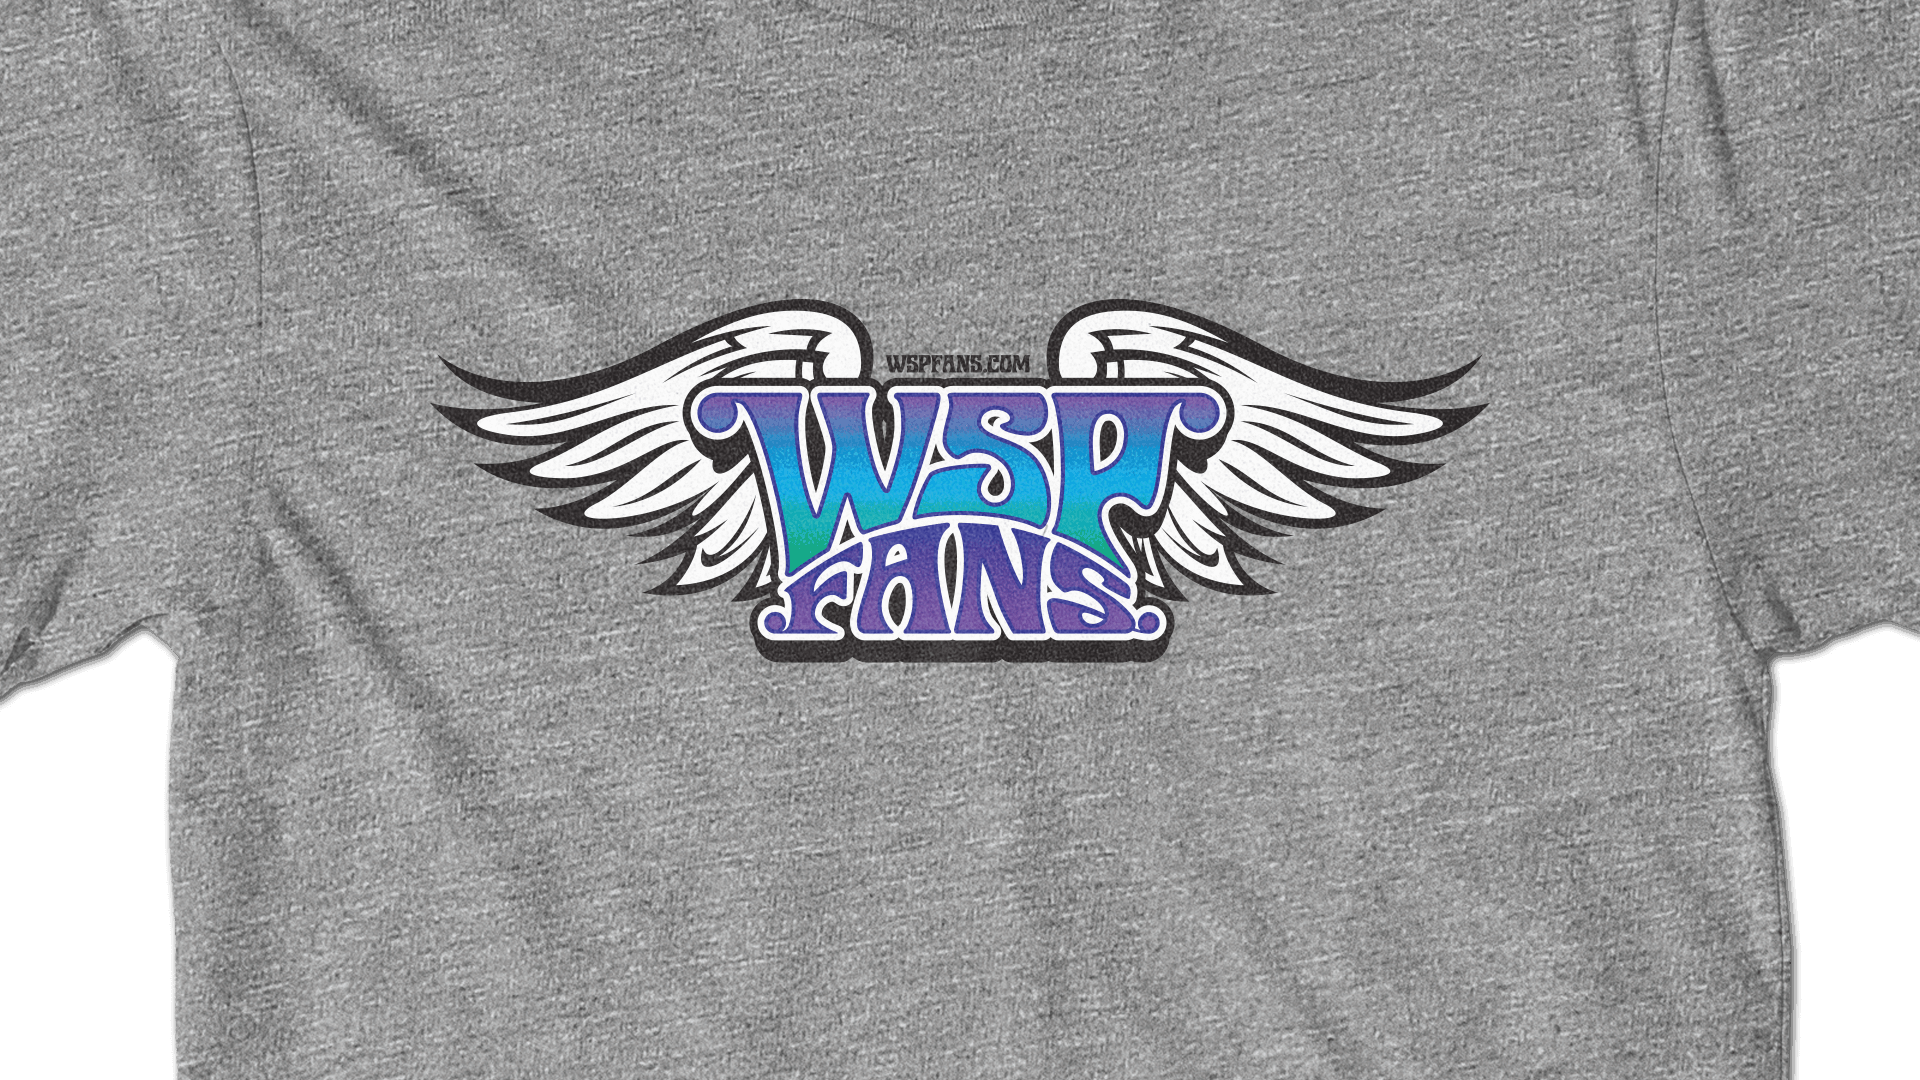 BRIAN HILL DESIGN: Widespread Panic Fans